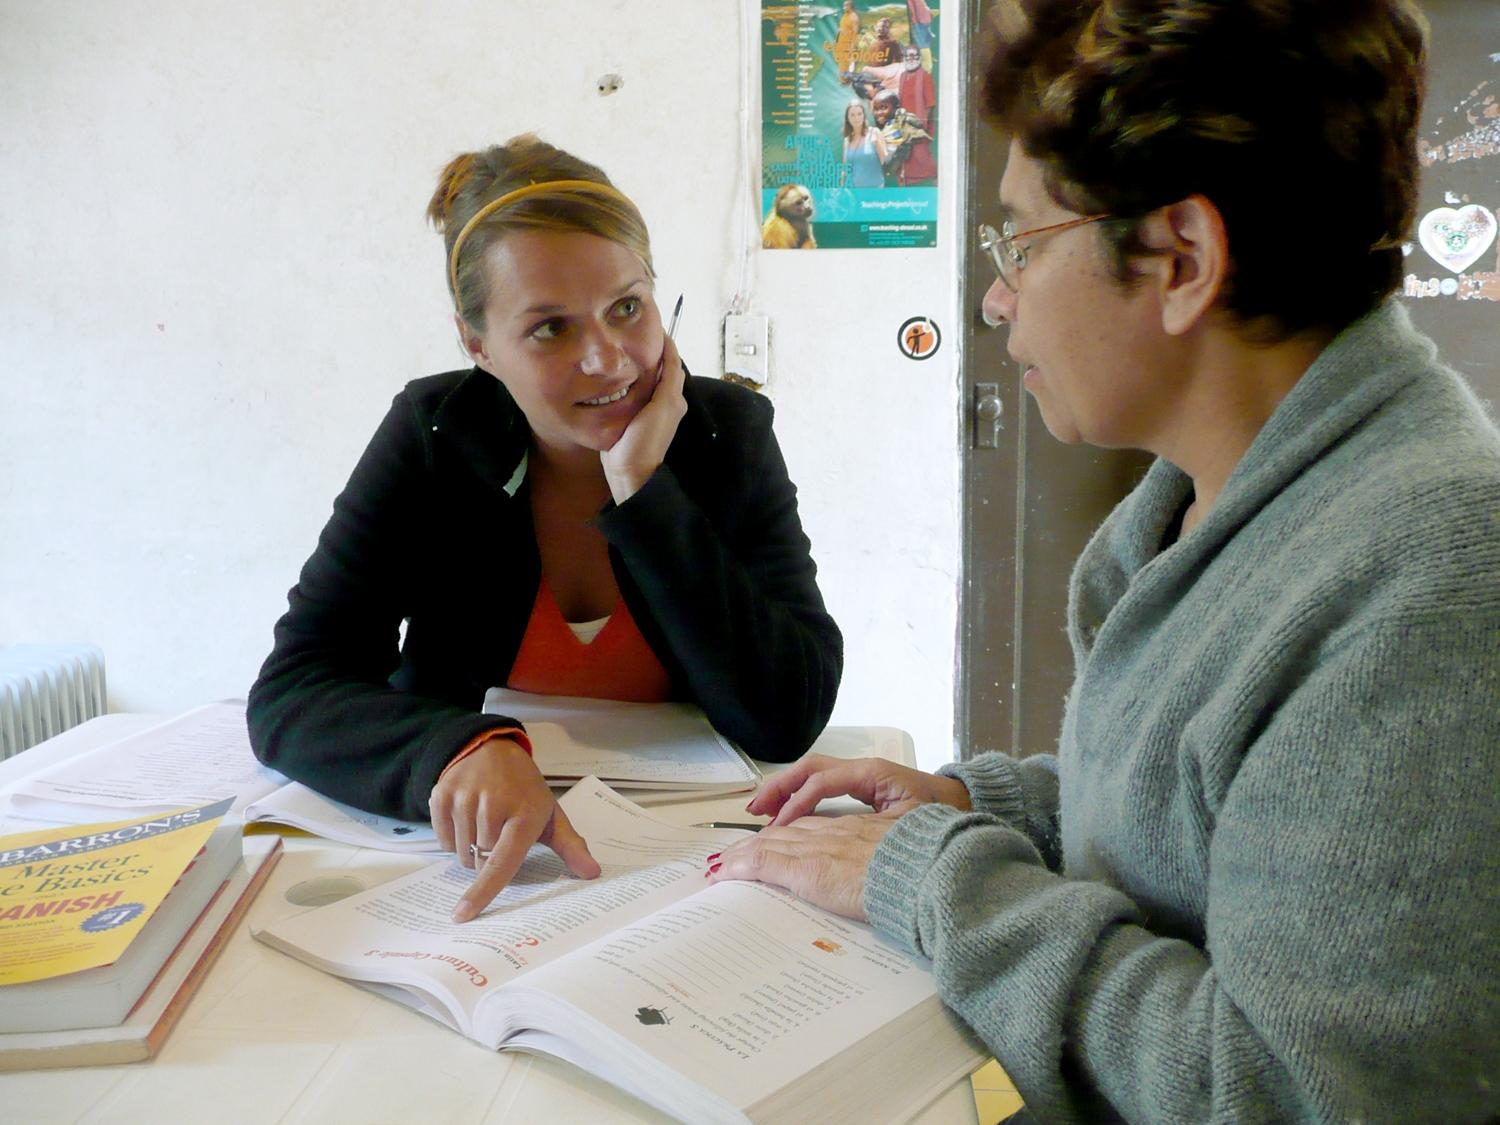 A volunteer listens intently to her tutor during her Arabic language course in Morocco.